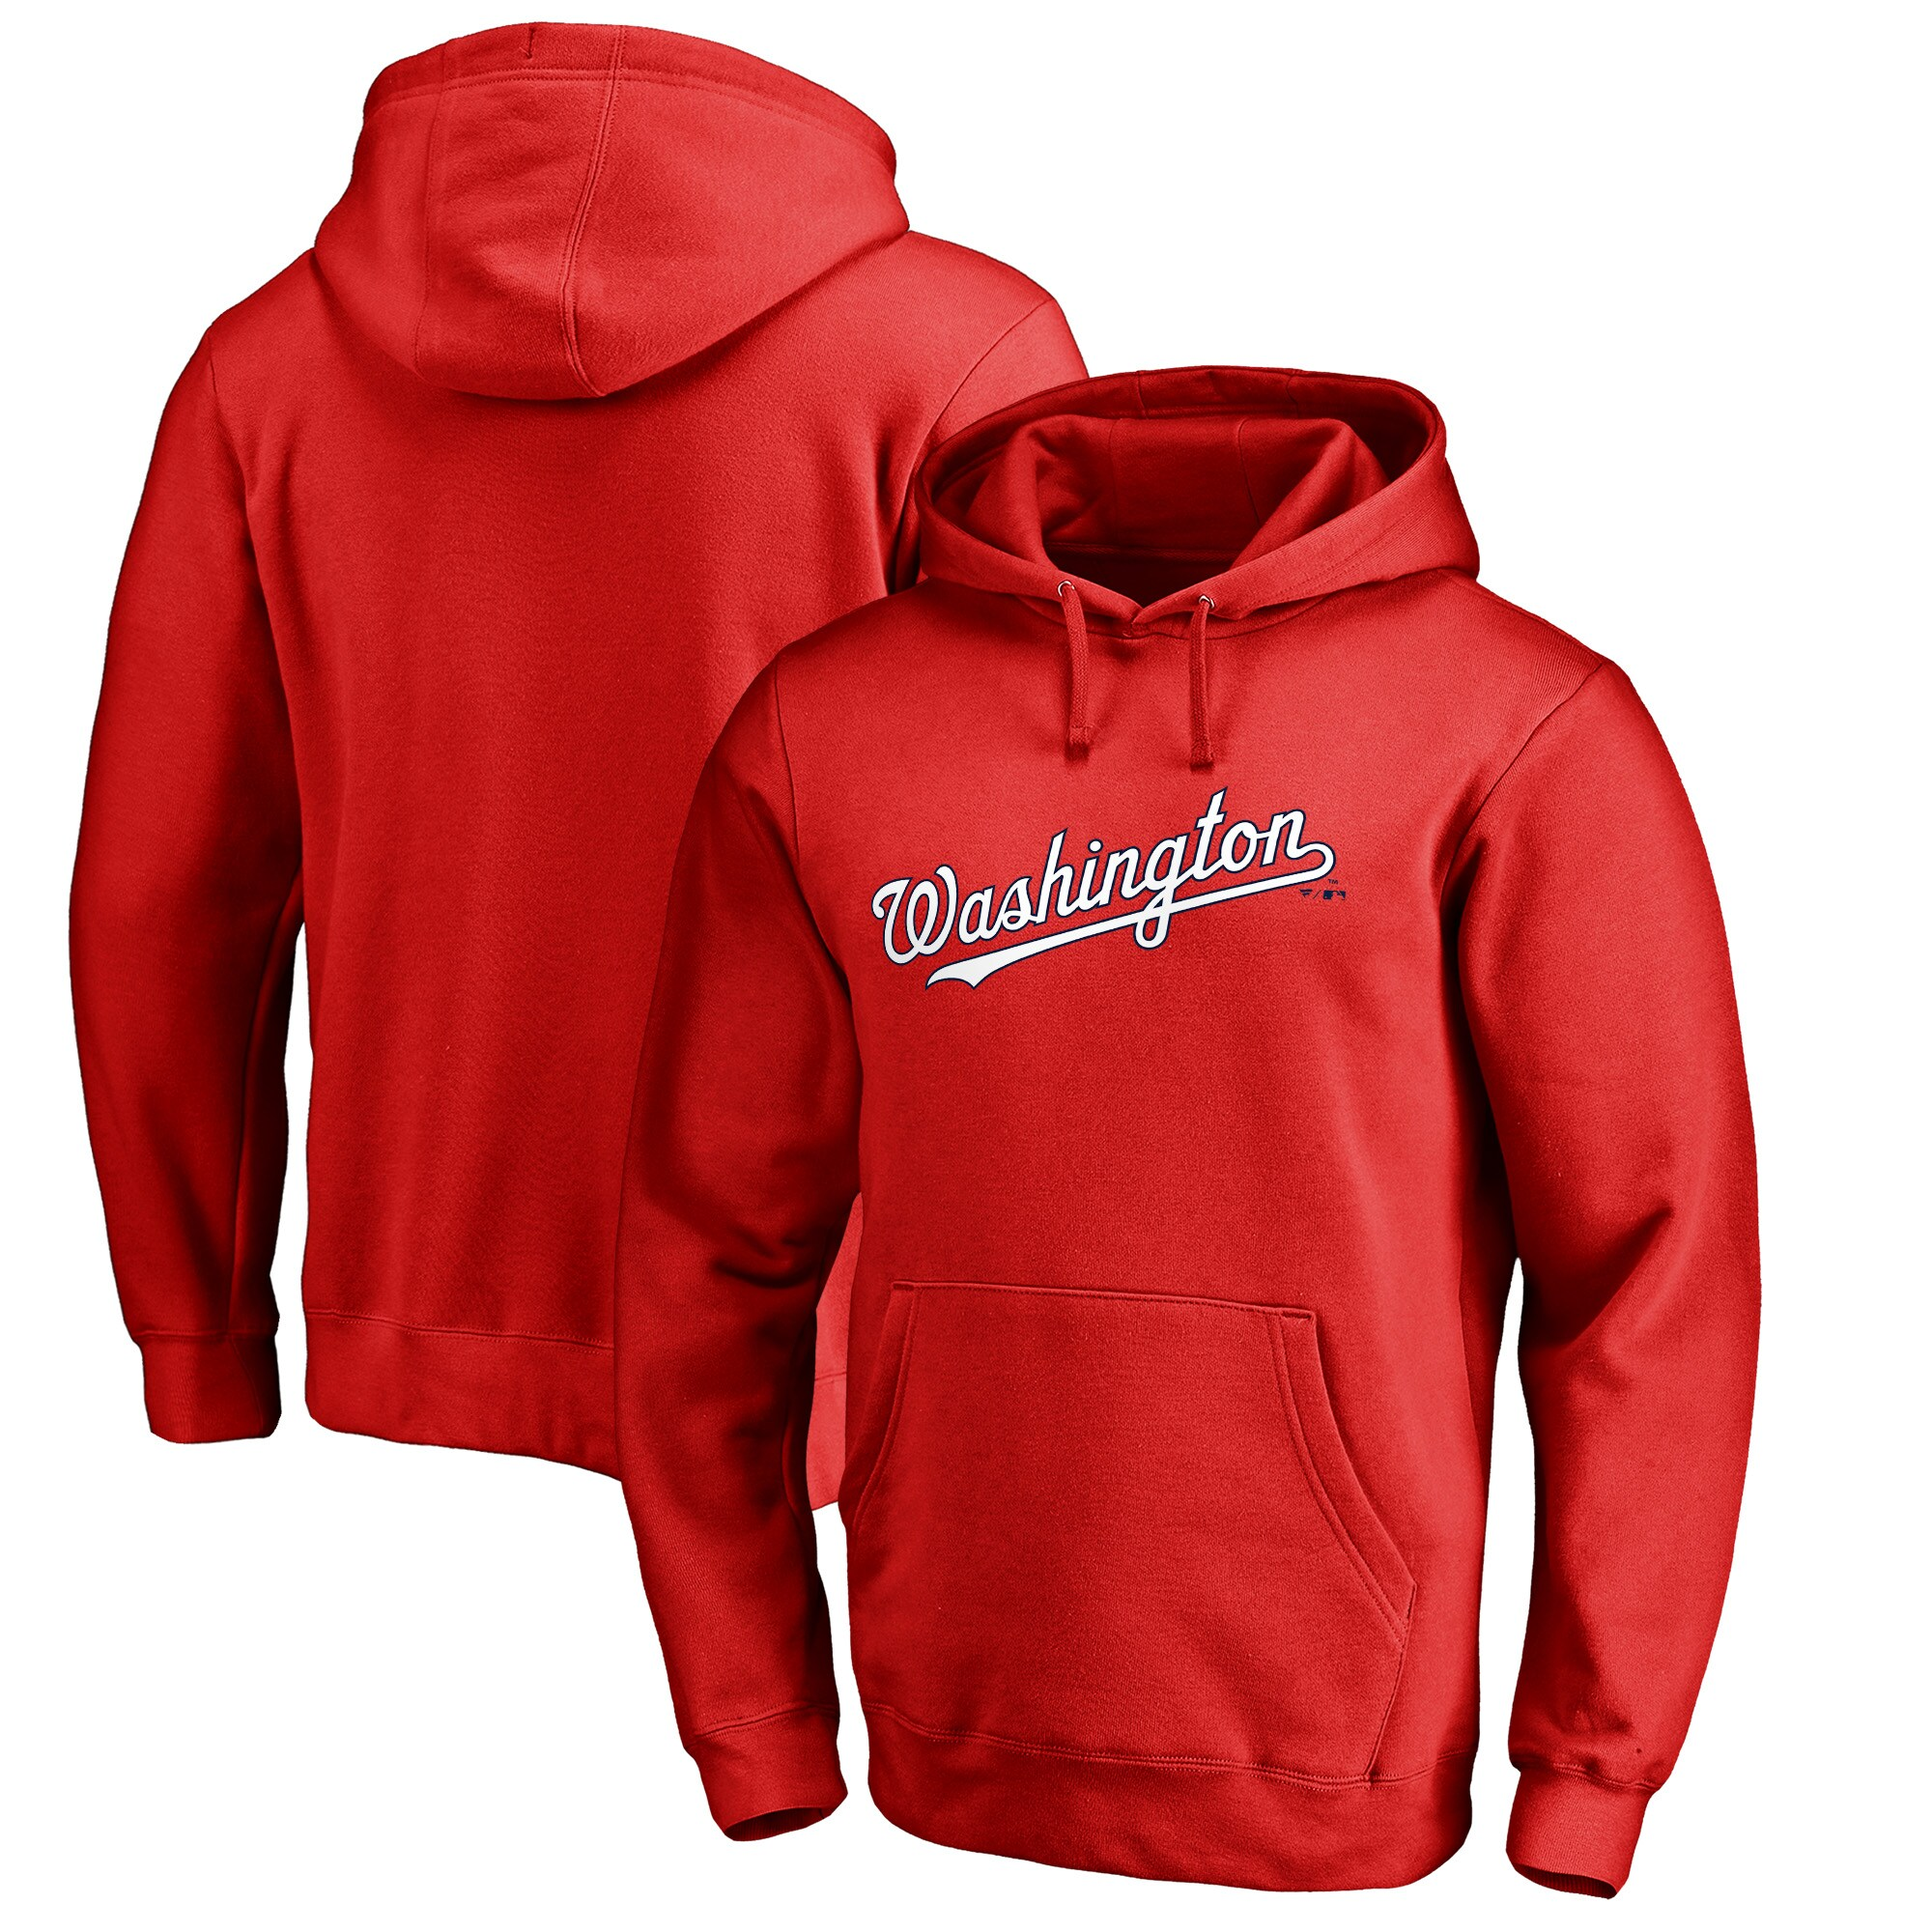 Washington Nationals Fanatics Branded Wordmark Big and Tall Pullover Hoodie - Red